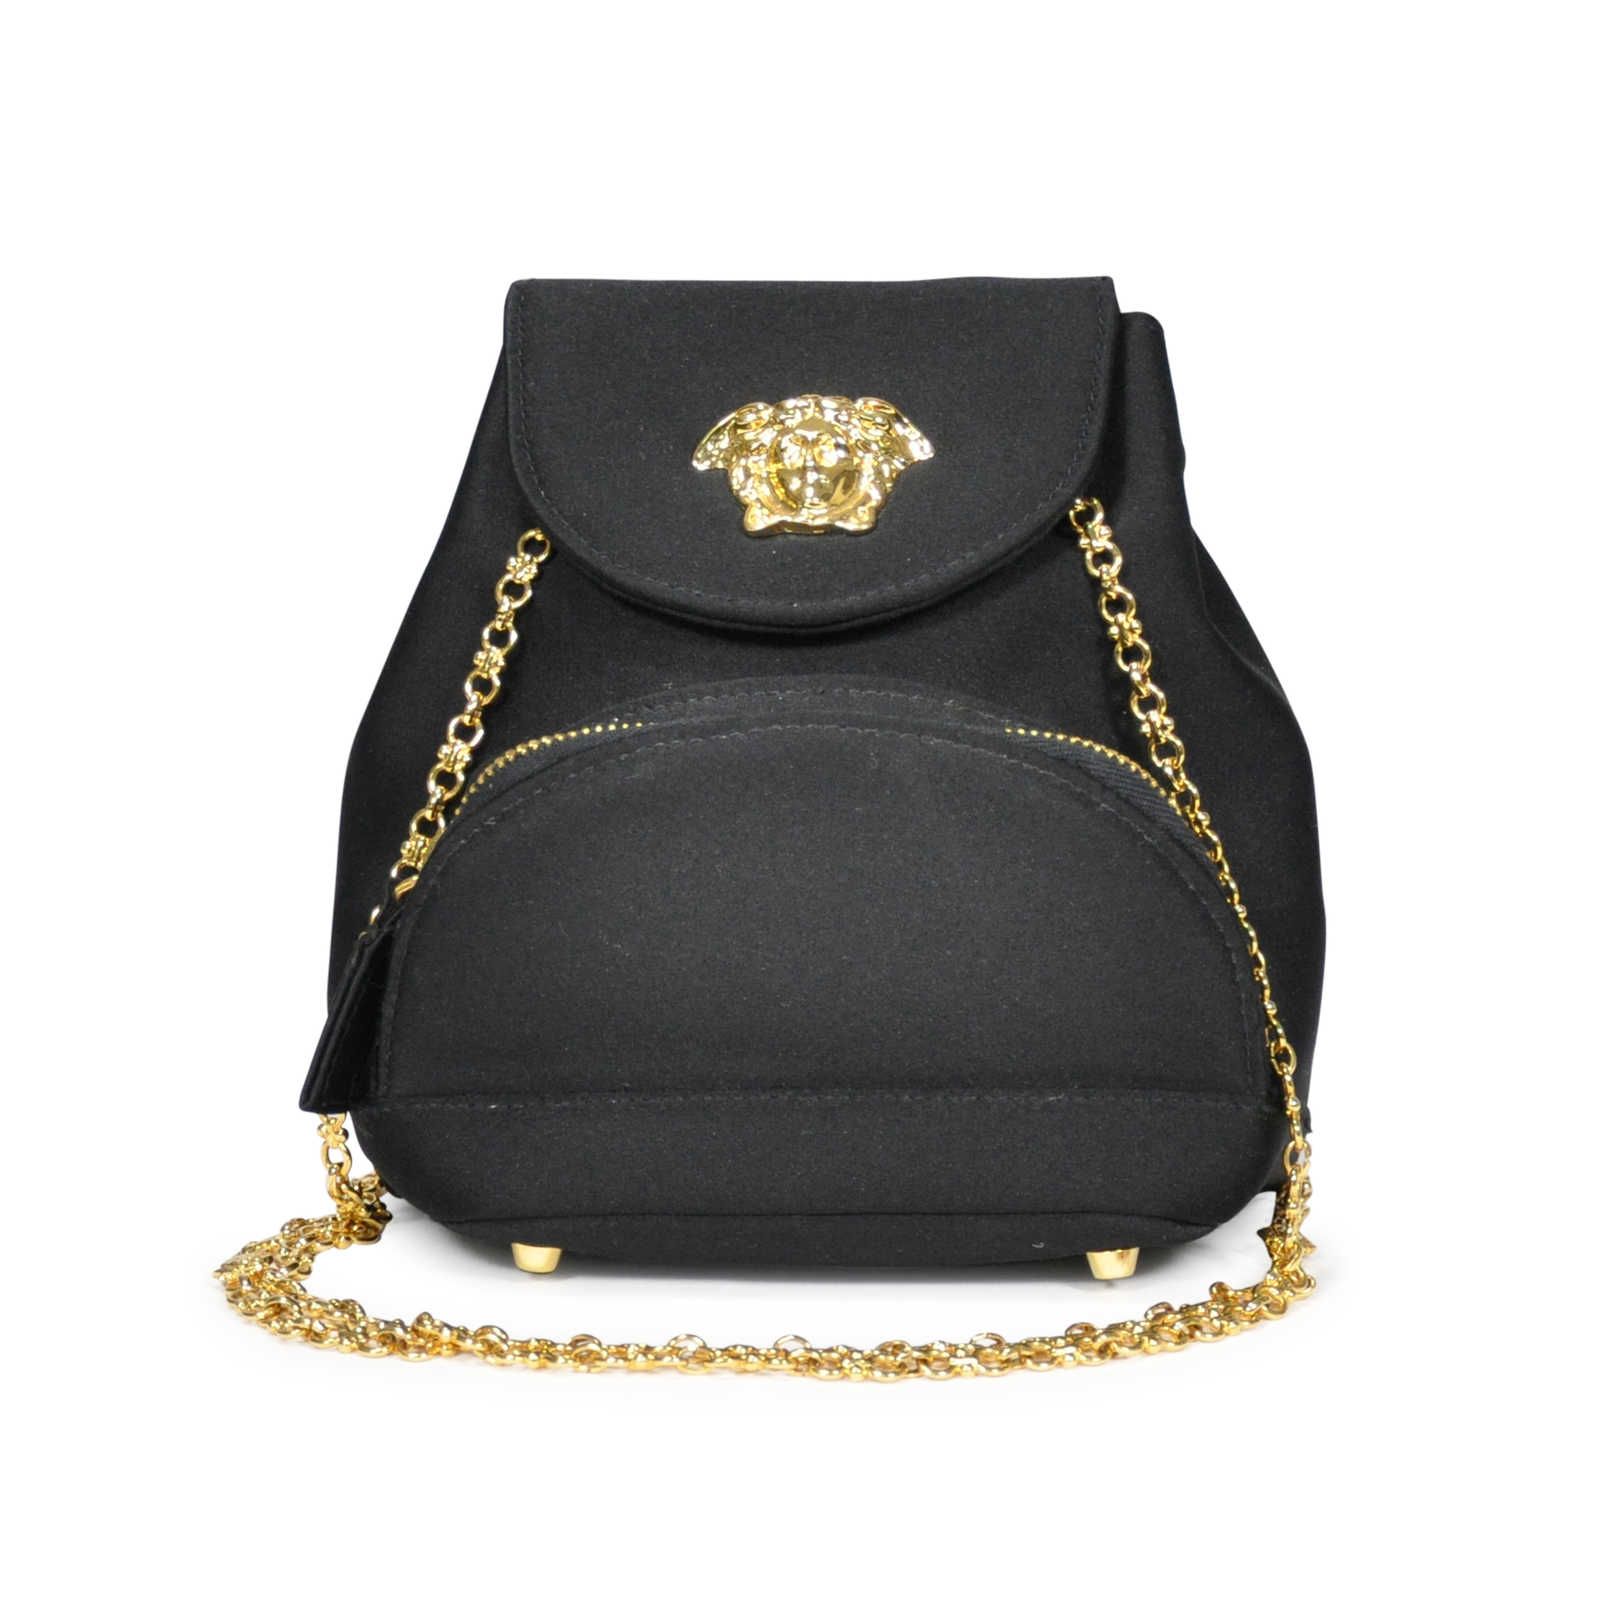 bb8d1fb3deb Tap to expand · Authentic Vintage Versace Medusa Satin Bag (PSS-045-00081)  - Thumbnail 0 ...